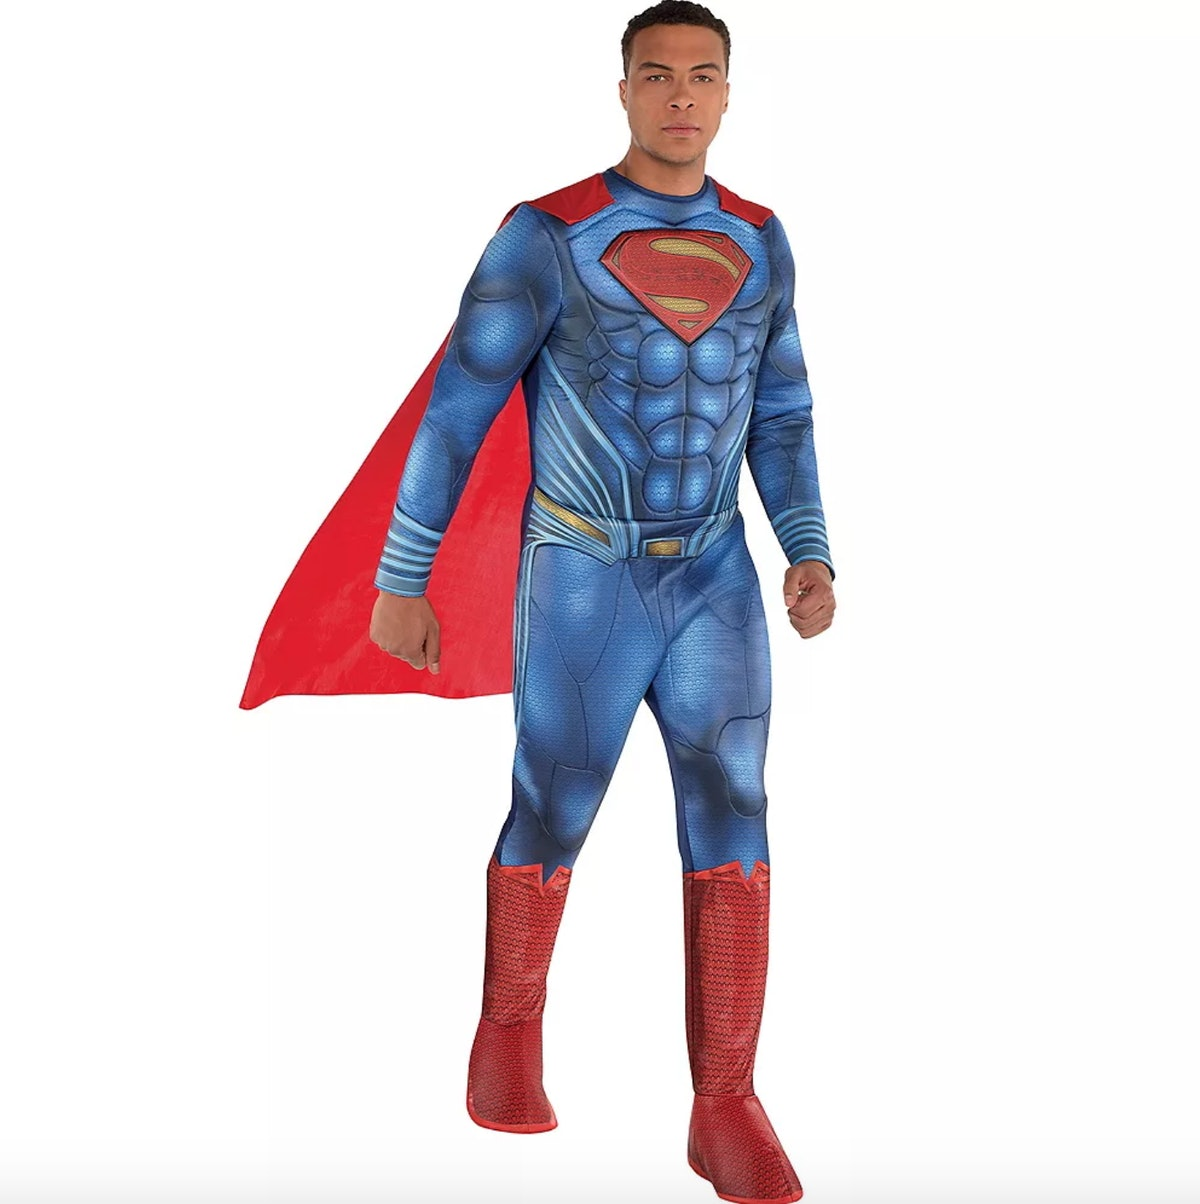 Dale Moss wore a Superman costume for Party City.